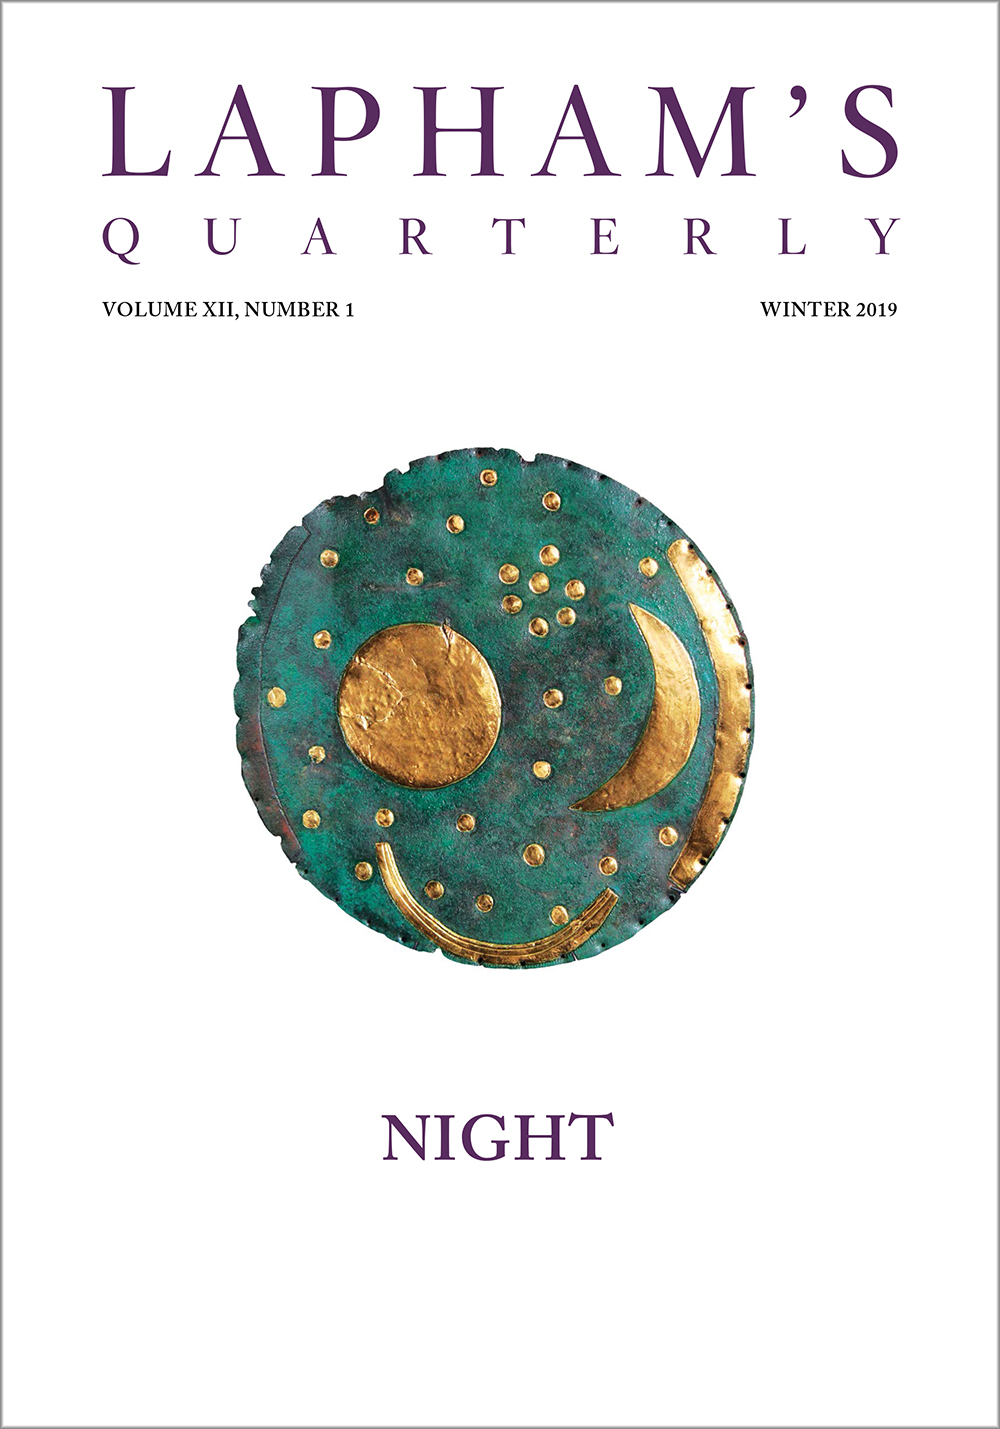 Night, the Winter 2019 issue of Lapham's Quarterly.